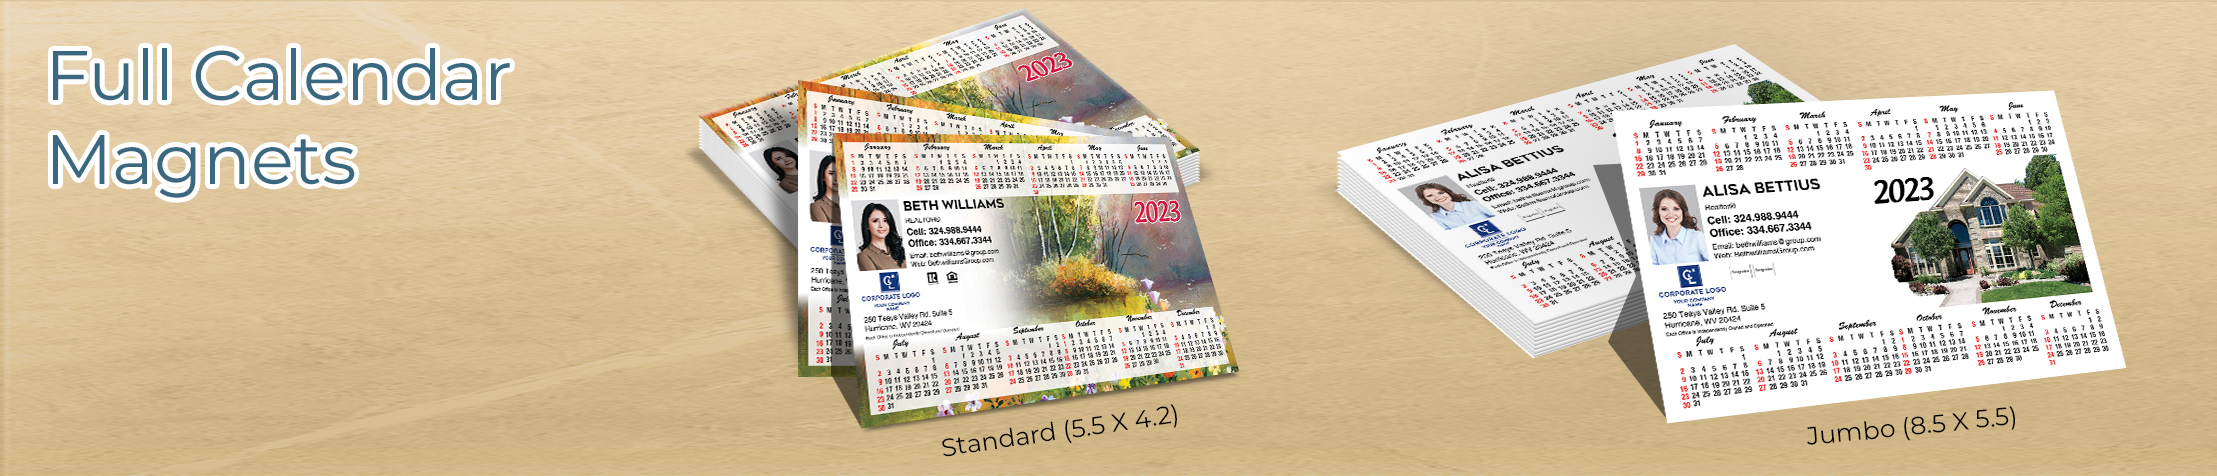 Coldwell Banker Real Estate Full Calendar Magnets - Coldwell Banker 2019 calendars in Standard or Jumbo Size | BestPrintBuy.com